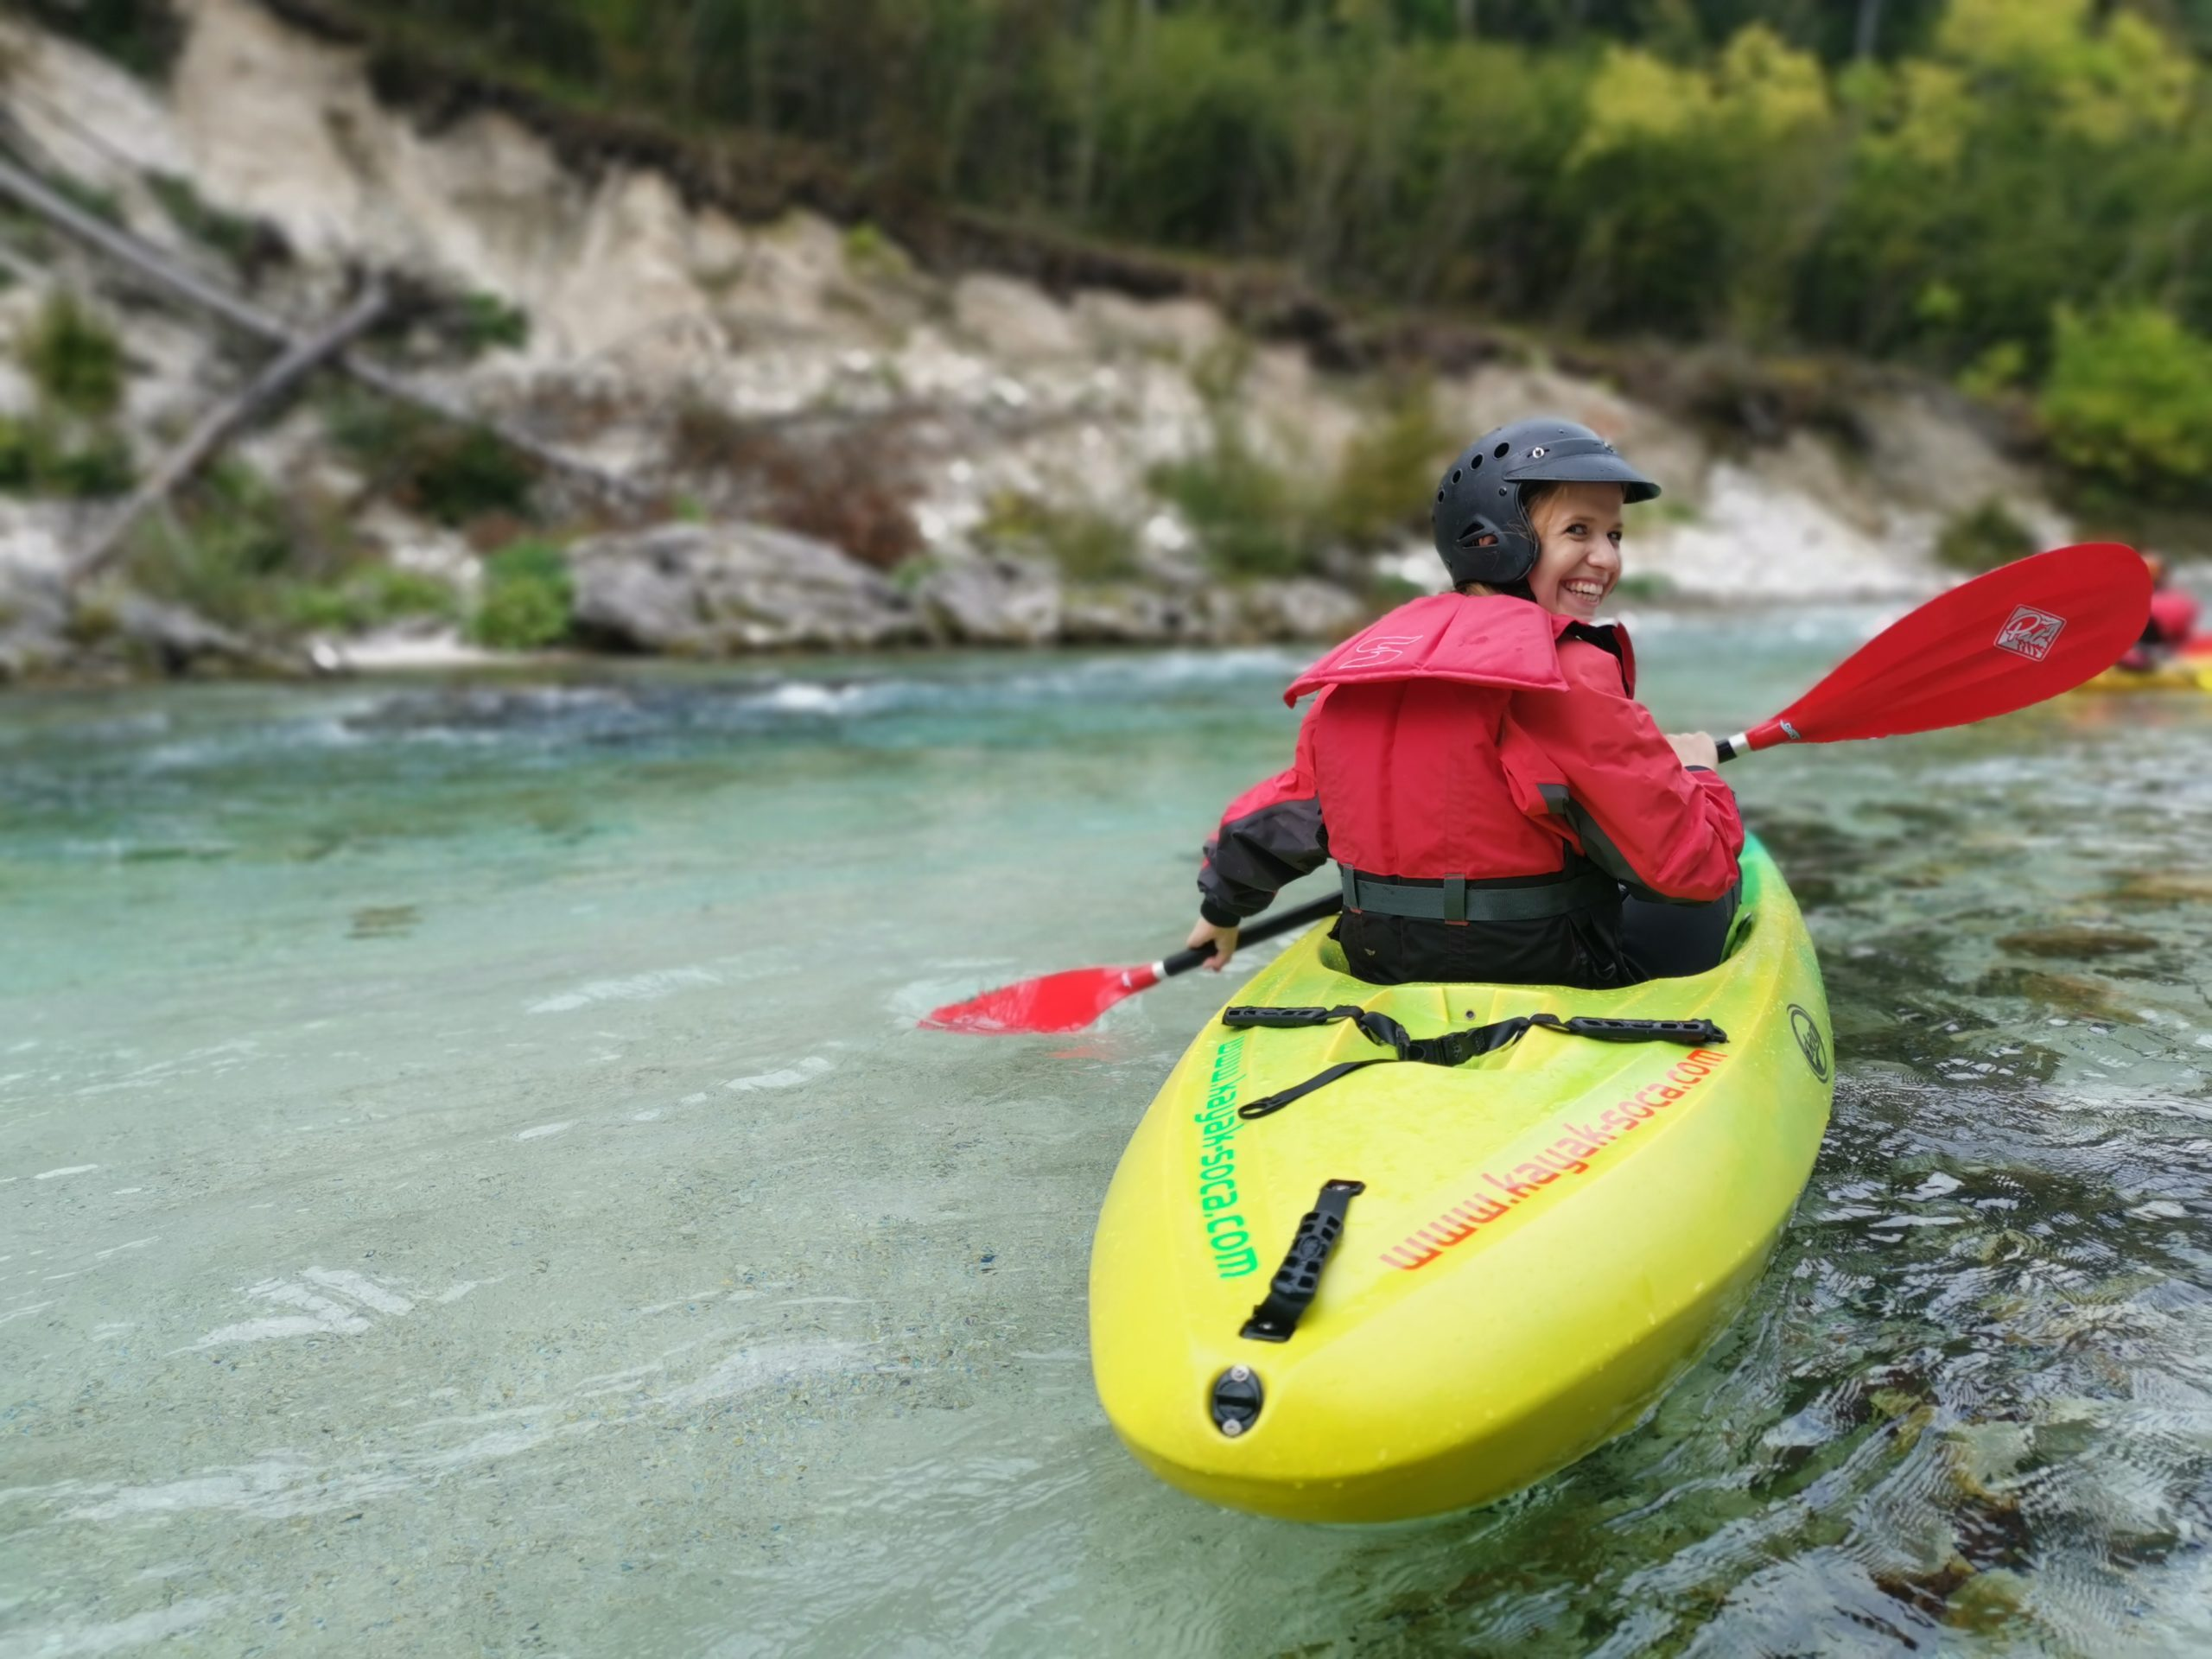 Daily Julian Alps Experience With Kayaking To Secret Spots On Soča River | Kayaking Experience on secret spots of Soča river | Kayak-soca.com